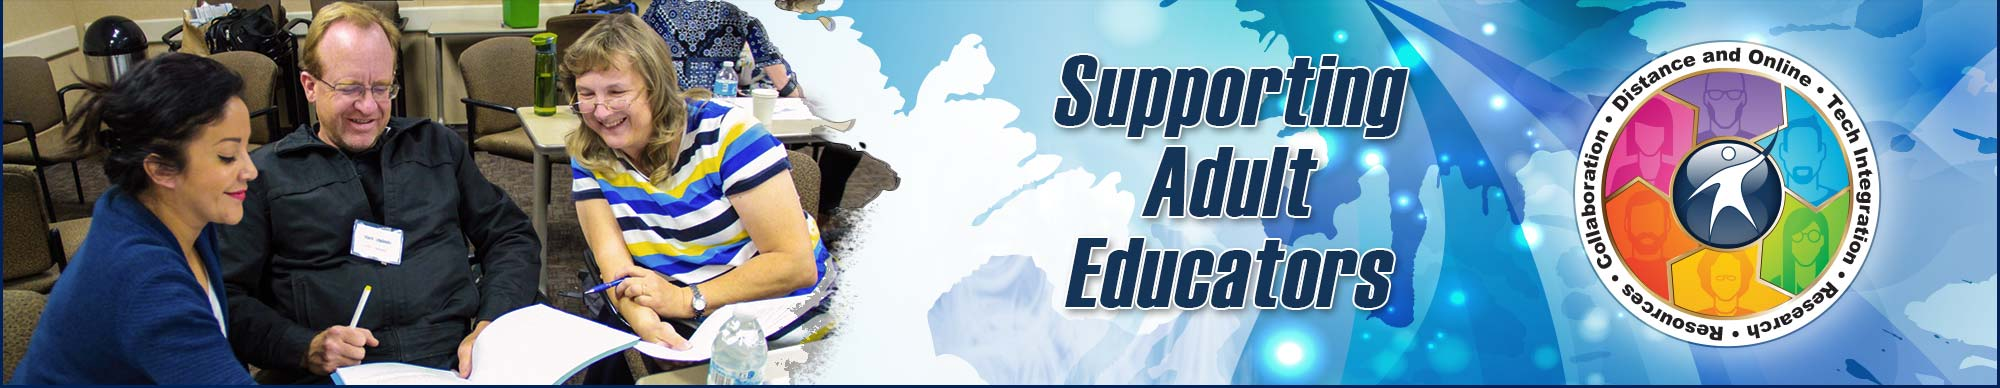 Supporting Adult Educators banner